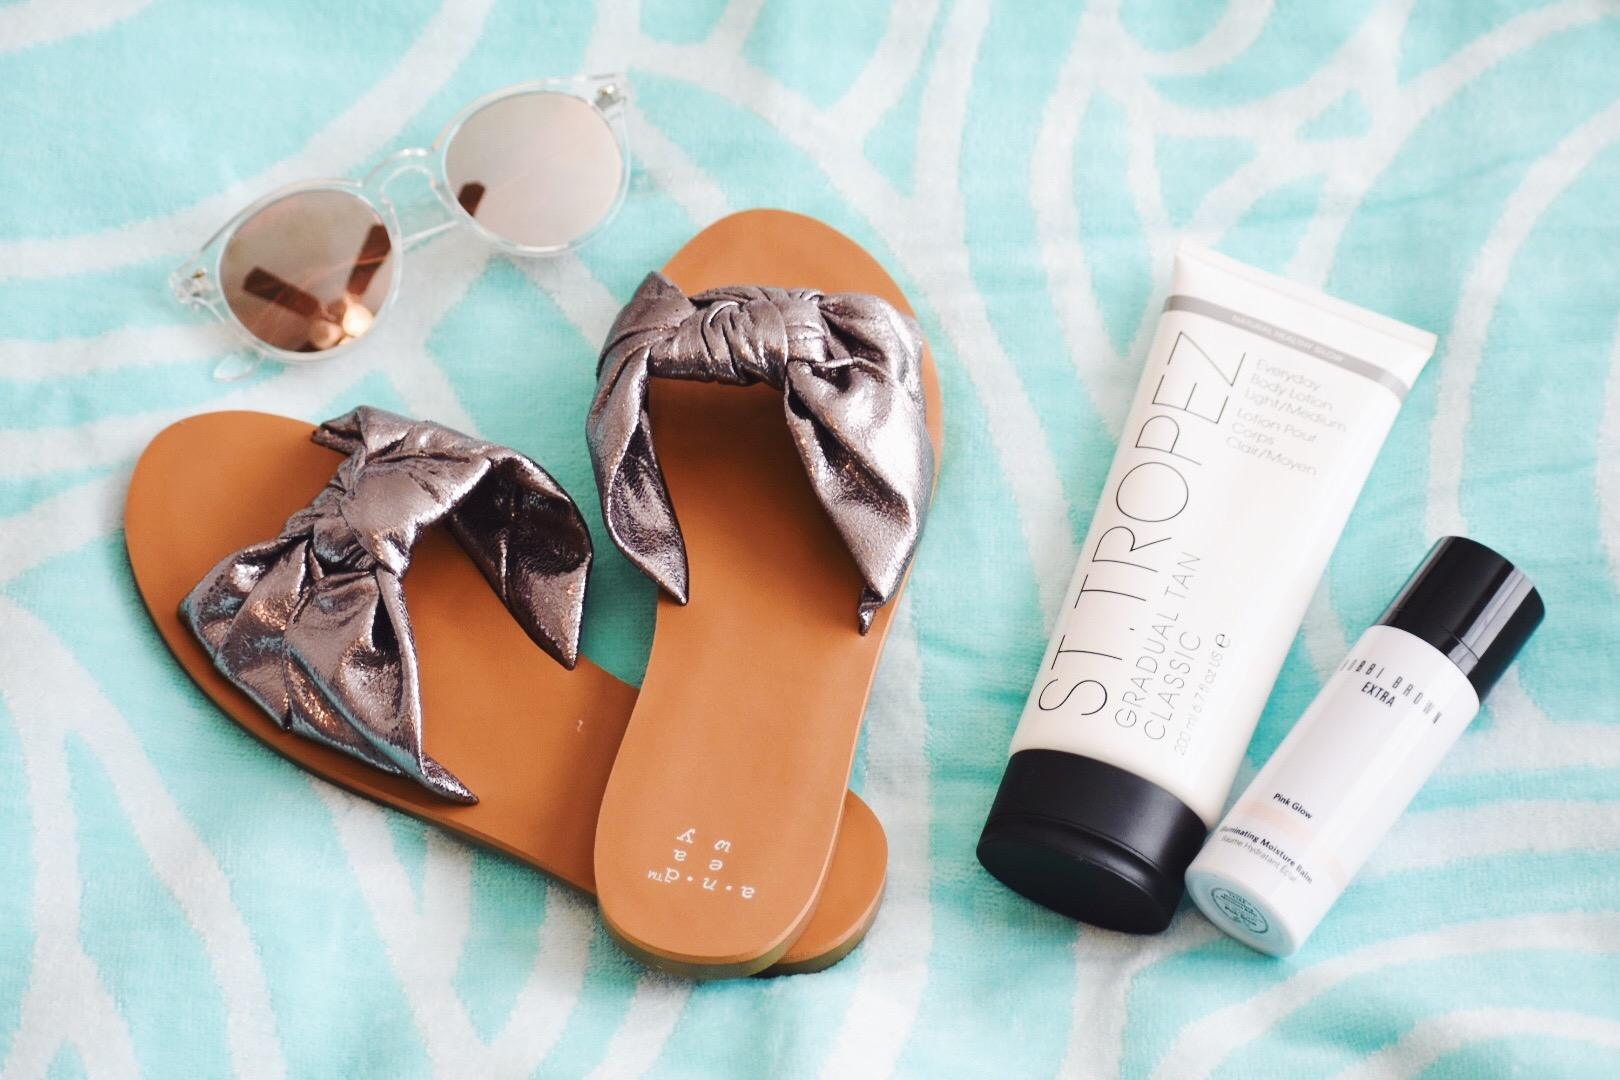 The last few items that are absolutely essential for spring are: more sandals {duh}, sunglasses, a fun beach towel, and lotion to help you glow this season!  Target is a great place to stock up on sandals at a really reasonable price. They also have an array of sunglasses and beach towels to choose from to match anyone's budget!  The next two items are perfect for people who don't like spray tans/tanning beds, but still want to glow this spring. I am a very pale person and I'm proud of it! I love my skin tone, but coming out of winter I always look more than just pale-try transparent? I started using St. Tropez gradual tan lotion to help me get a nice glow going for my trip. So far I'm not orange nor do I have streaks! It's definitely a great brand for self tanning that is subtle, doesn't smell and actually works!  Bobbi Brown is who I use for makeup and skincare products. I have super sensitive skin and this brand has yet to break me out! I use their Pink Glow Illuminating Moisturizer on top of my regular moisturizer to add a bit of a glow to my face, hands, shoulders, and chest area! You don't need a lot because a little goes a long way with this product. For people who don't like to tan these two products are perfect to help your skin look luminous this spring!